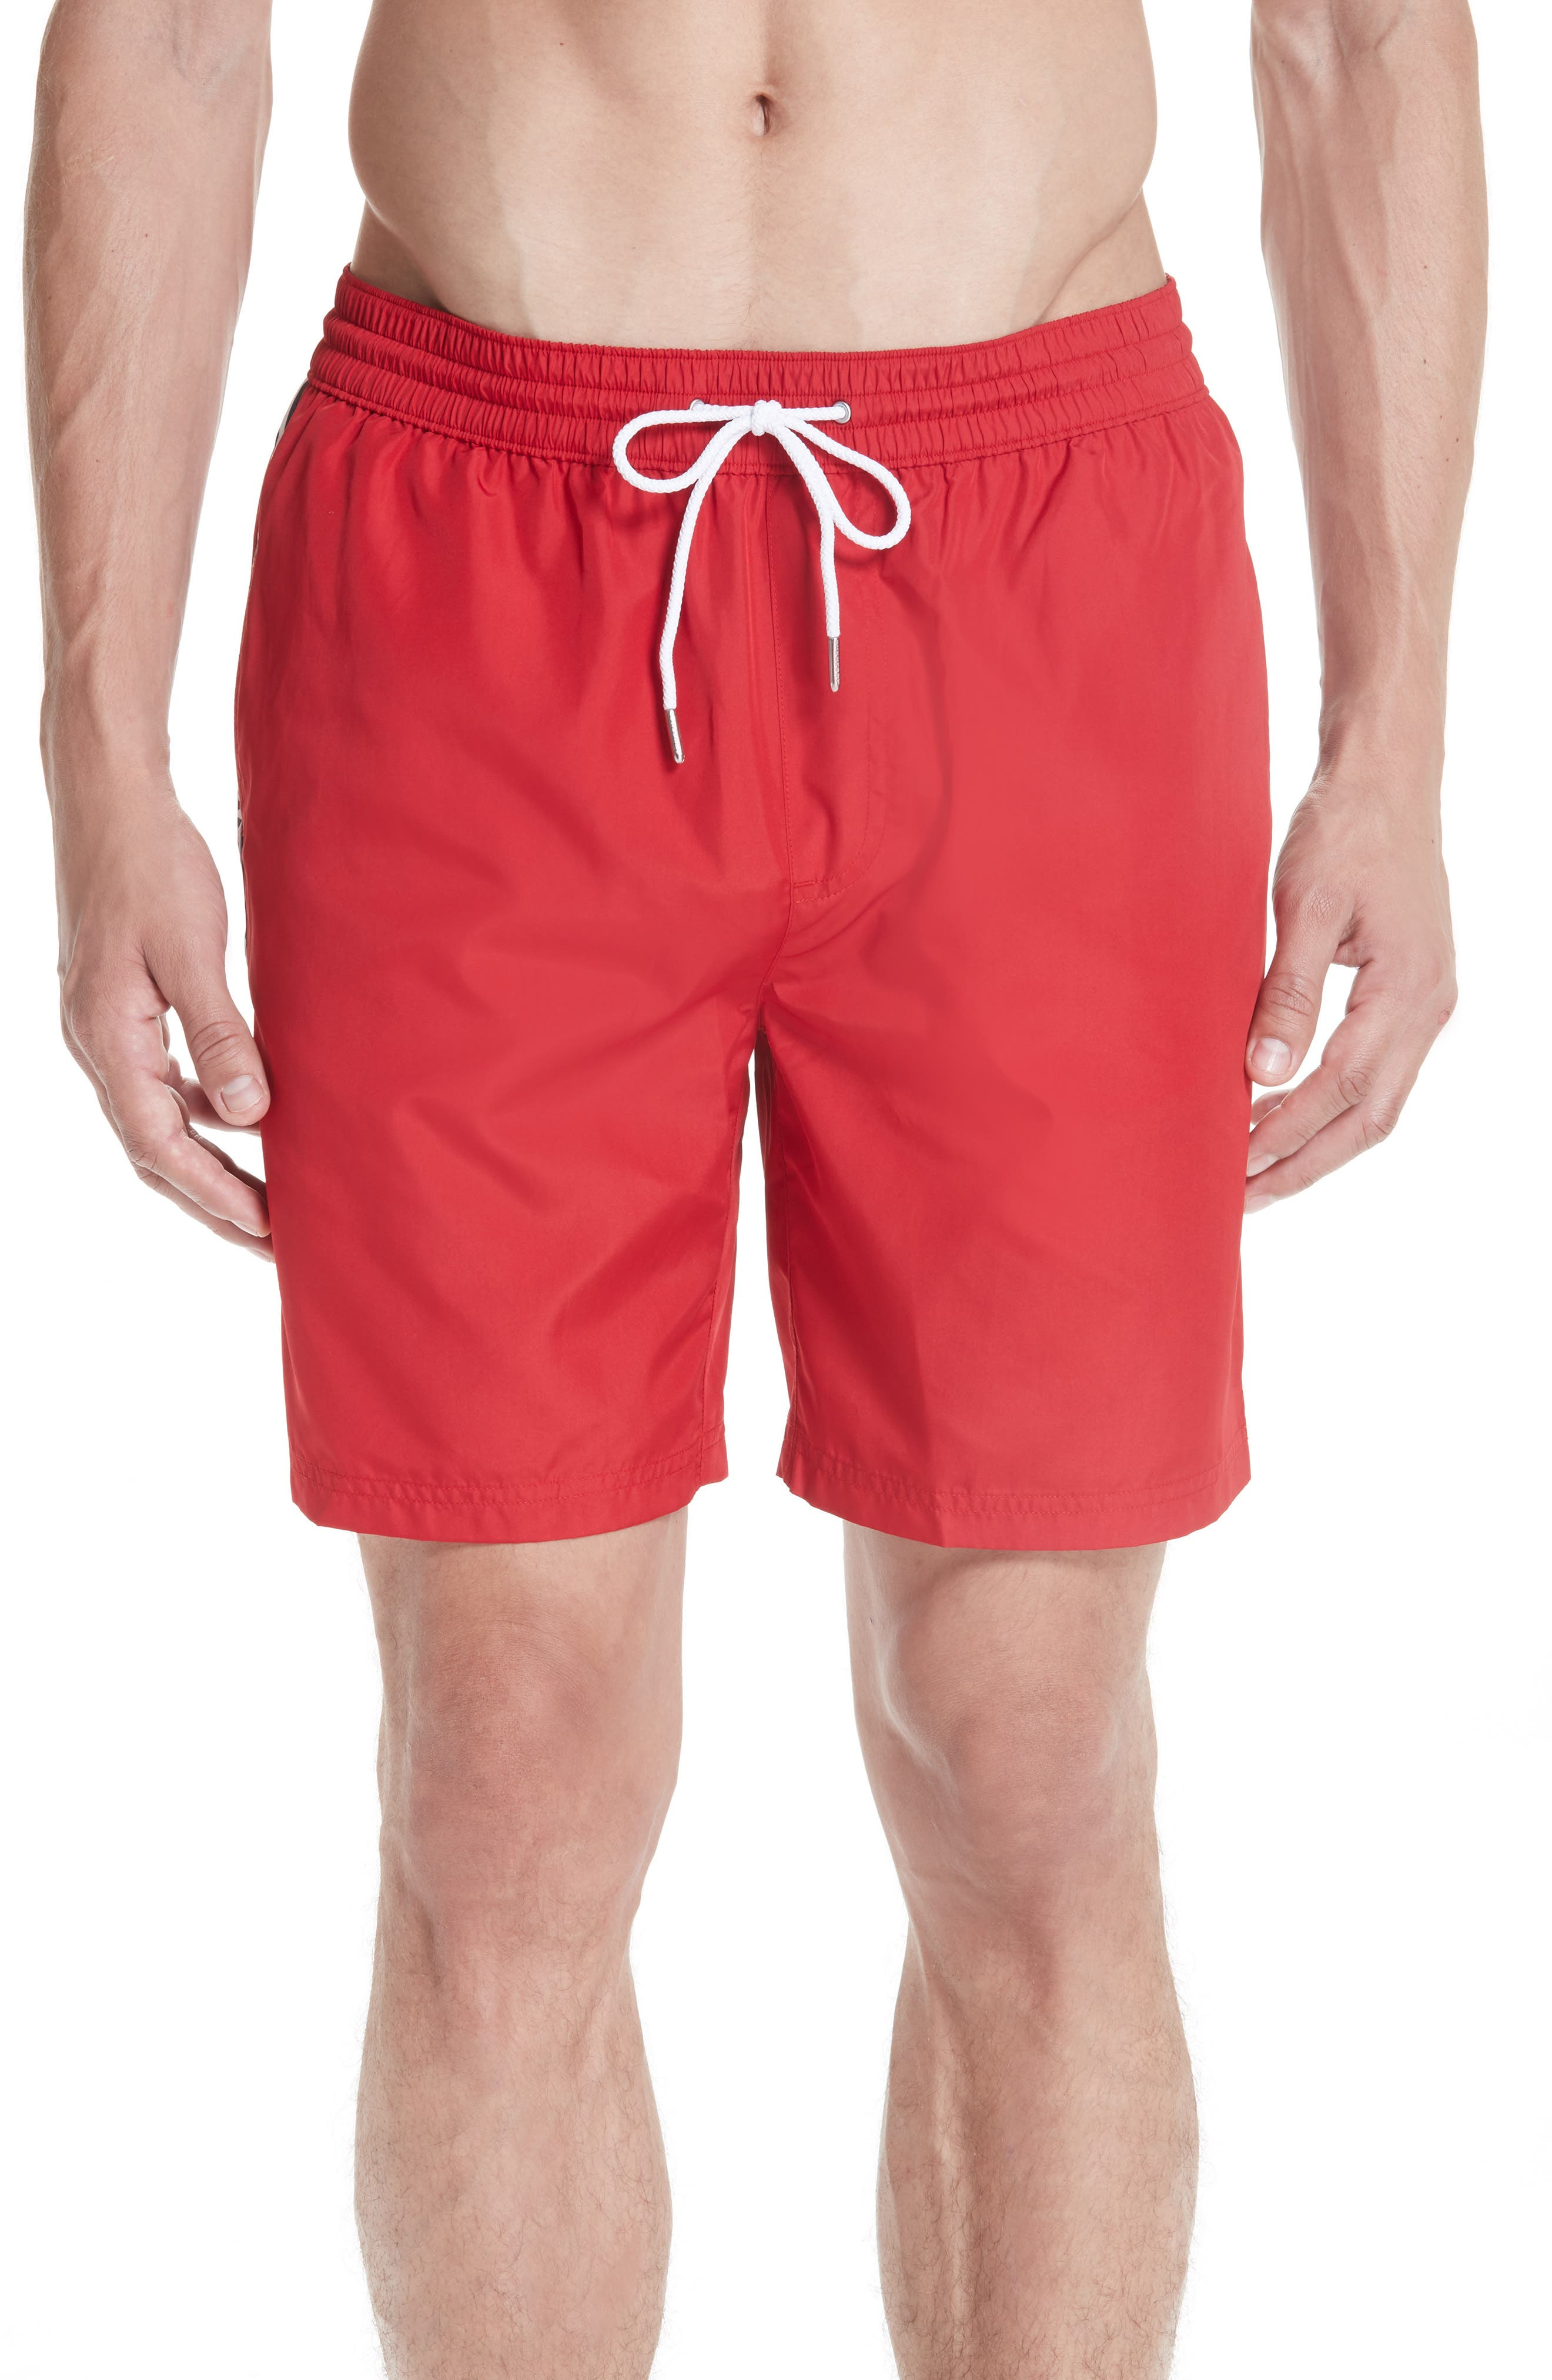 Guildes Swim Trunks,                         Main,                         color, PARADE RED